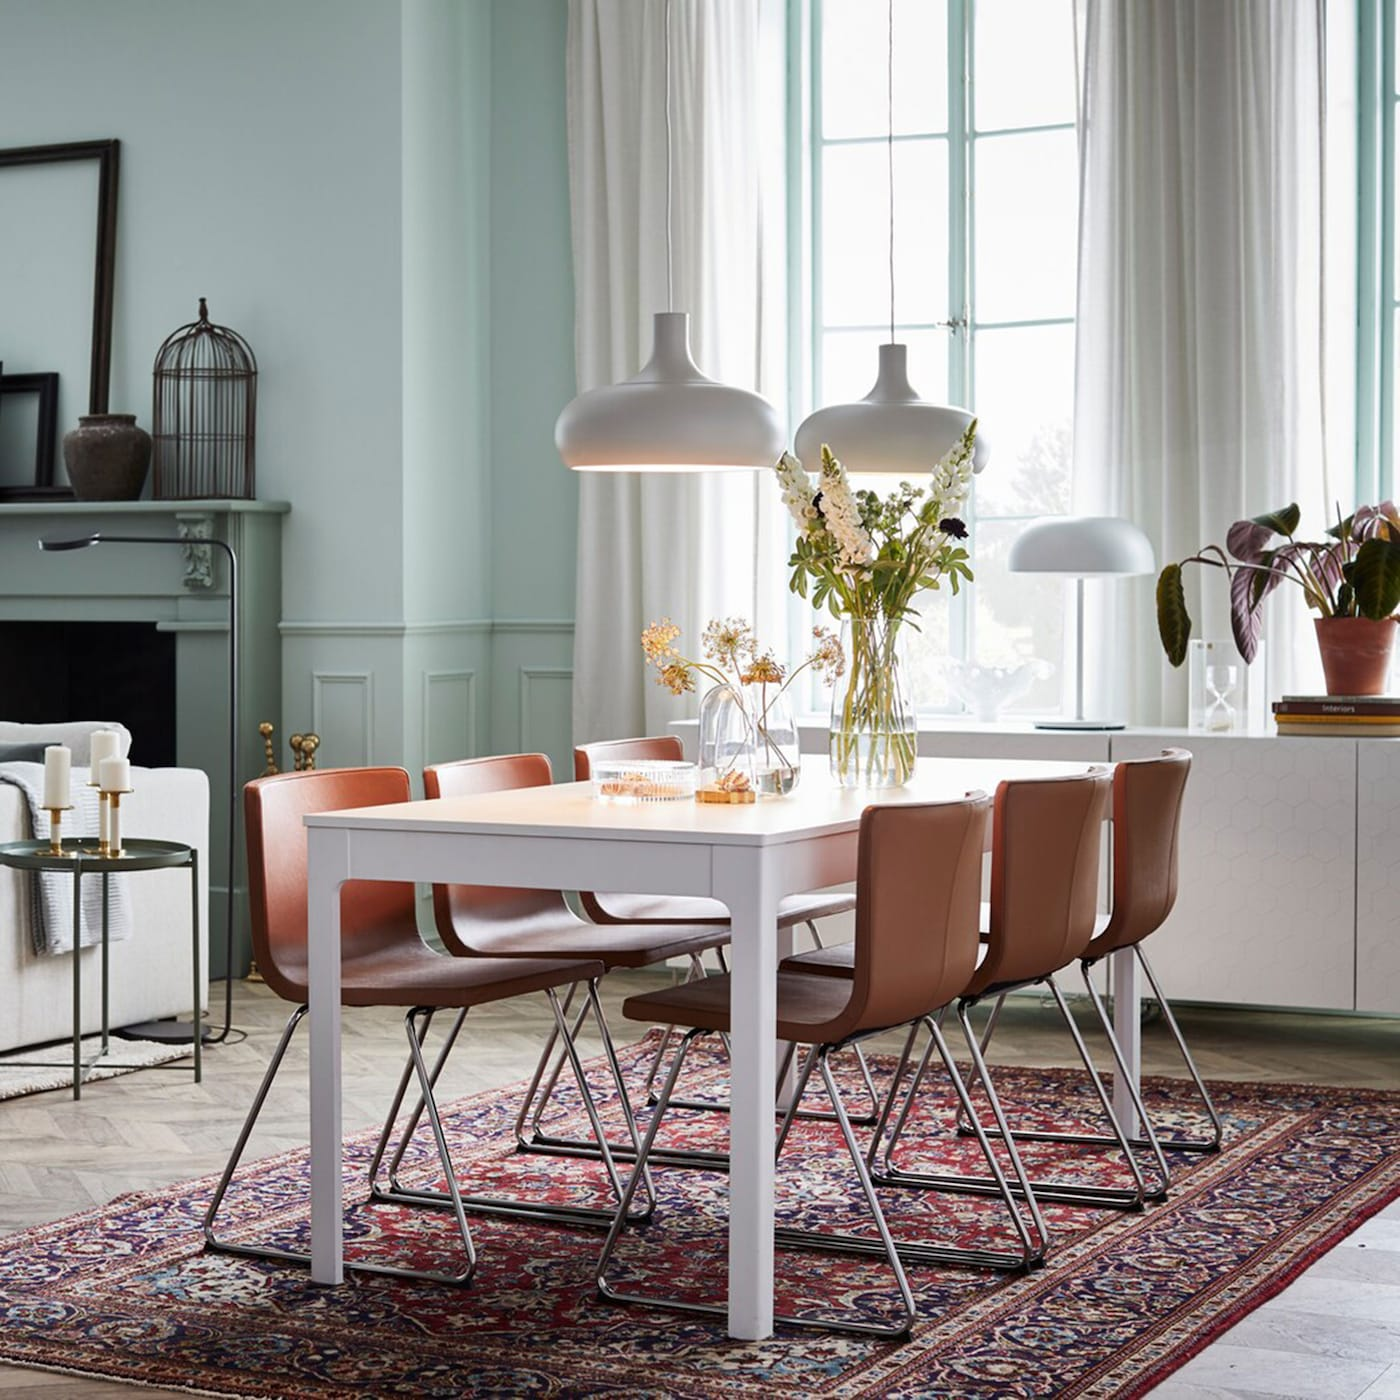 IKEA EKEDALEN white extendable table and BERNHARD brown leather seats in a modern open space dining area.